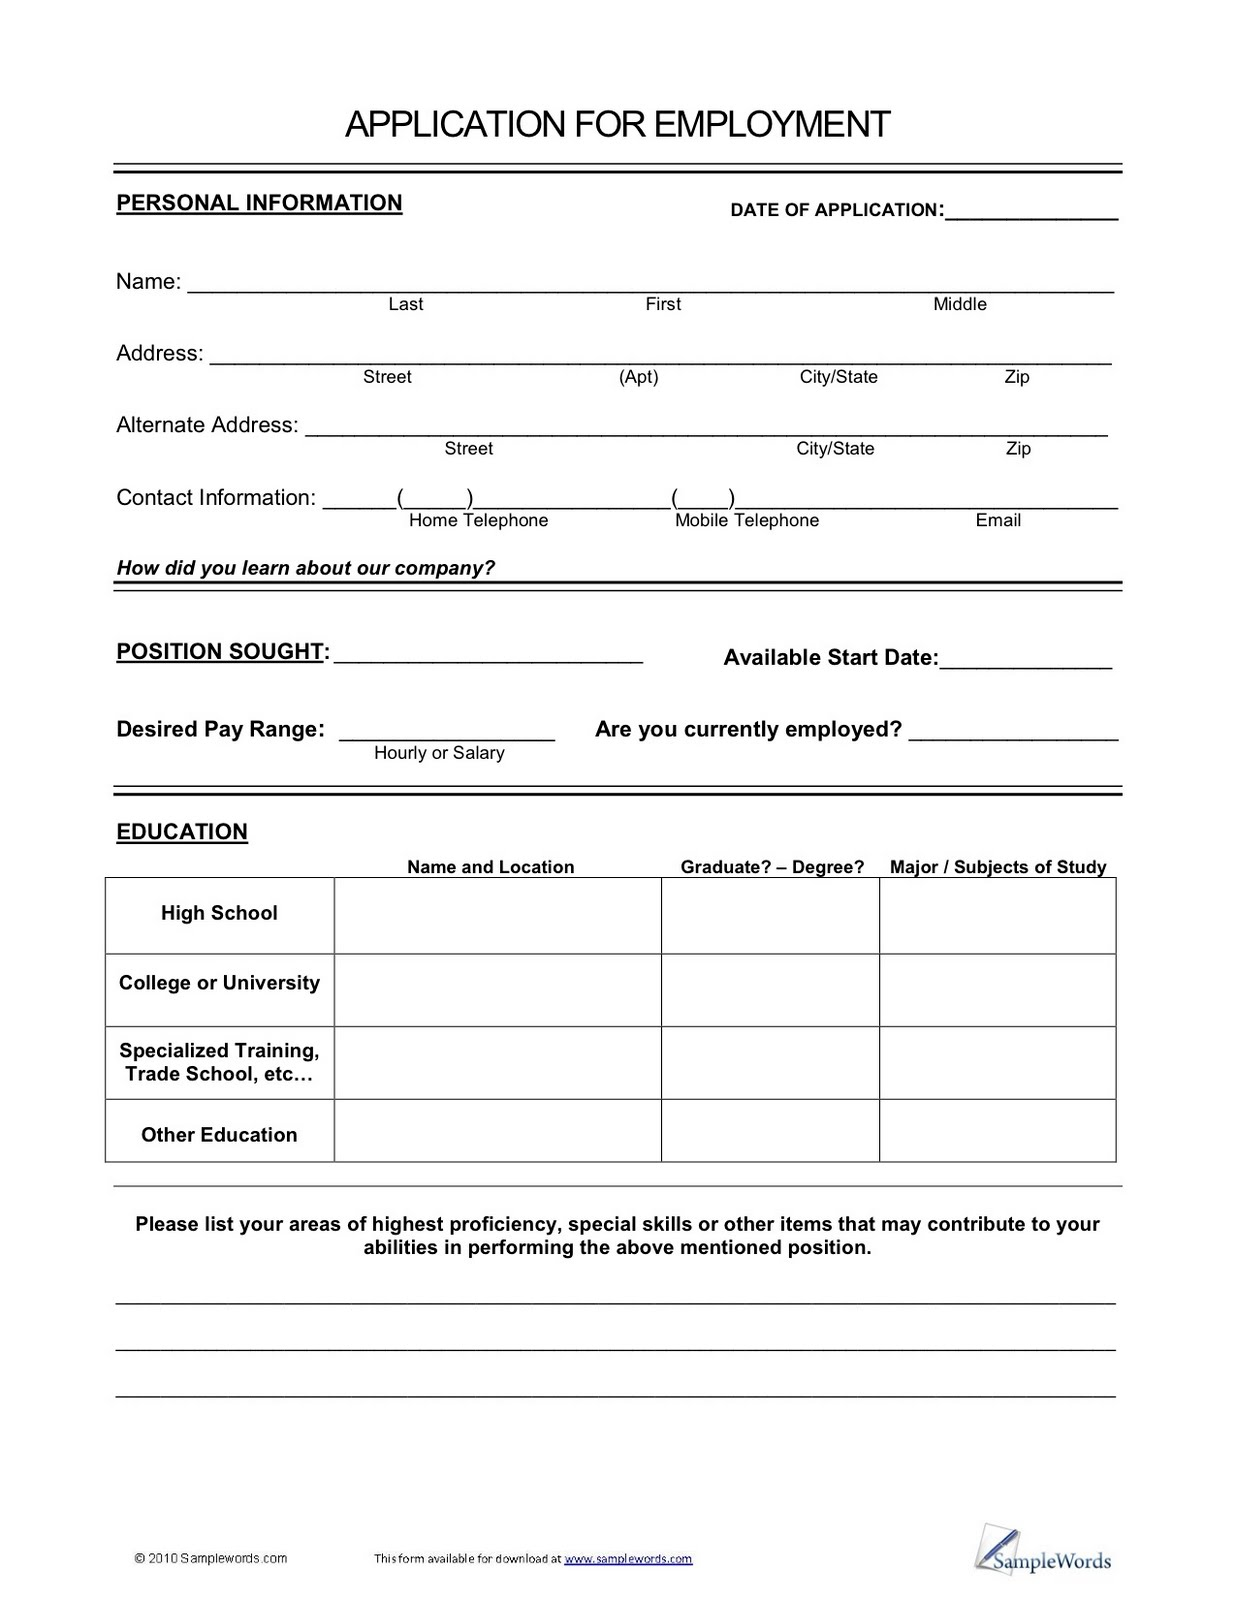 Vons Job Application Form